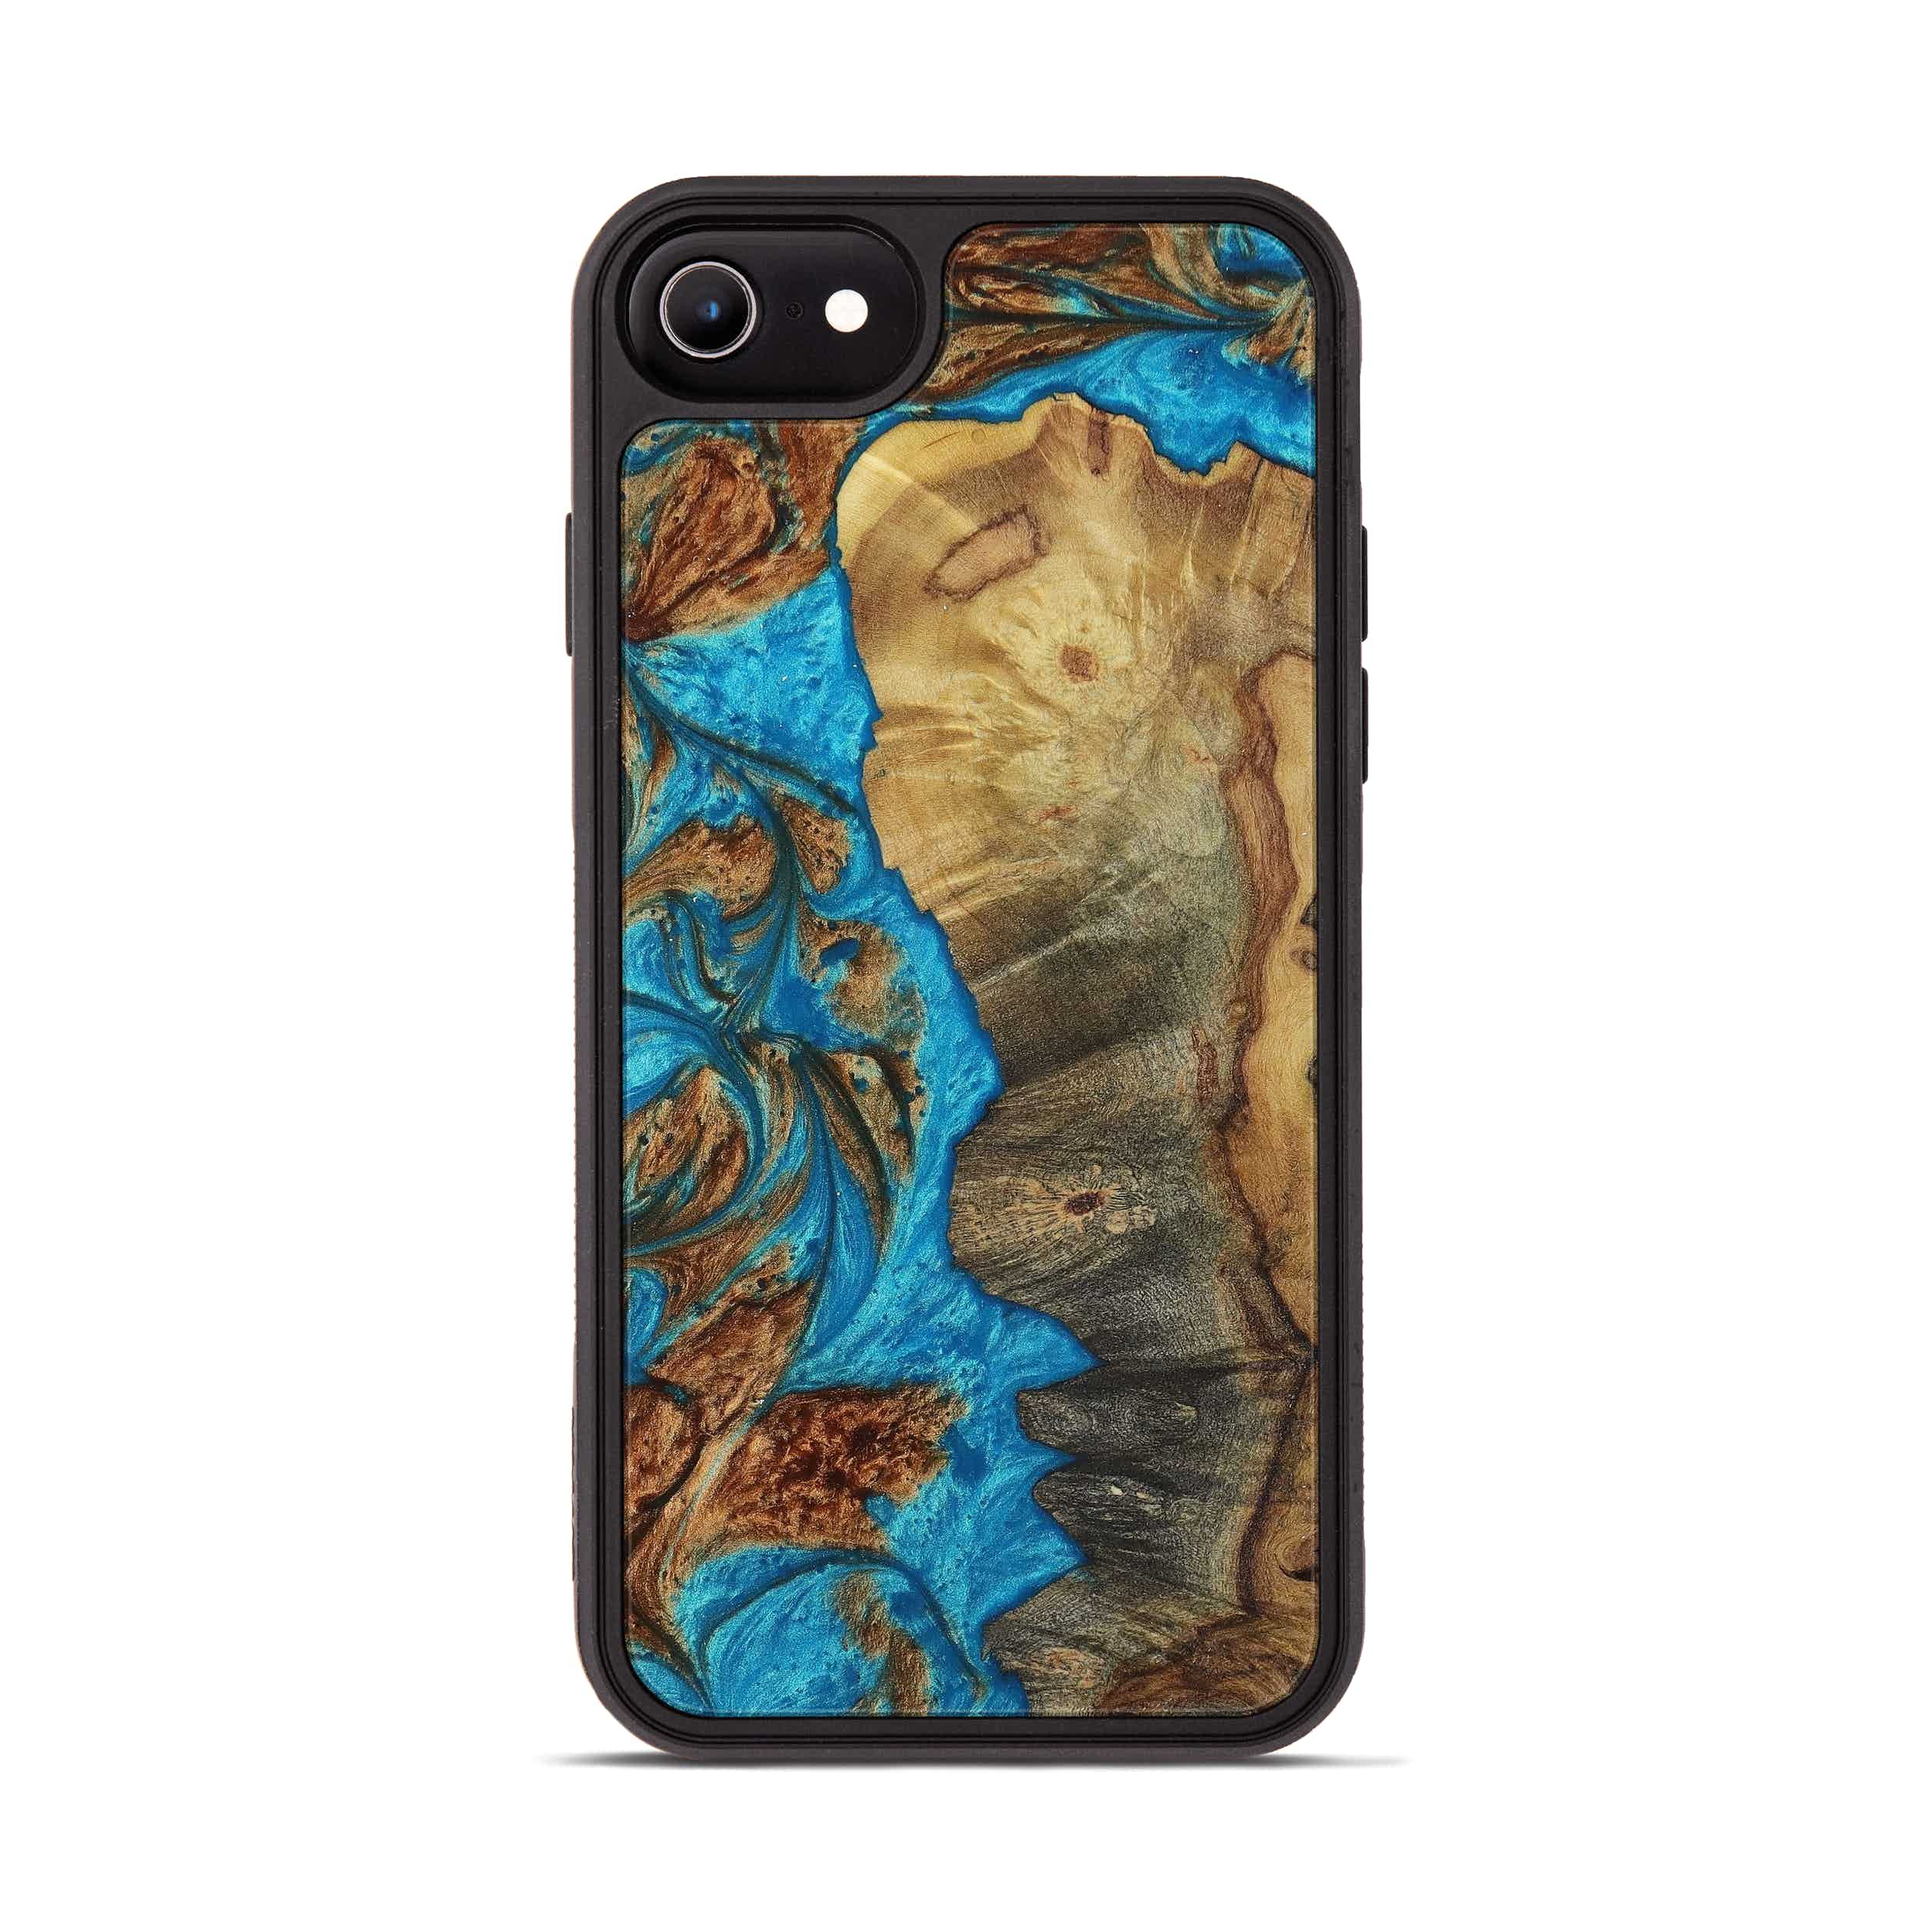 iPhone 6s Wood+Resin Phone Case - Desmond (Teal & Gold, 397221)